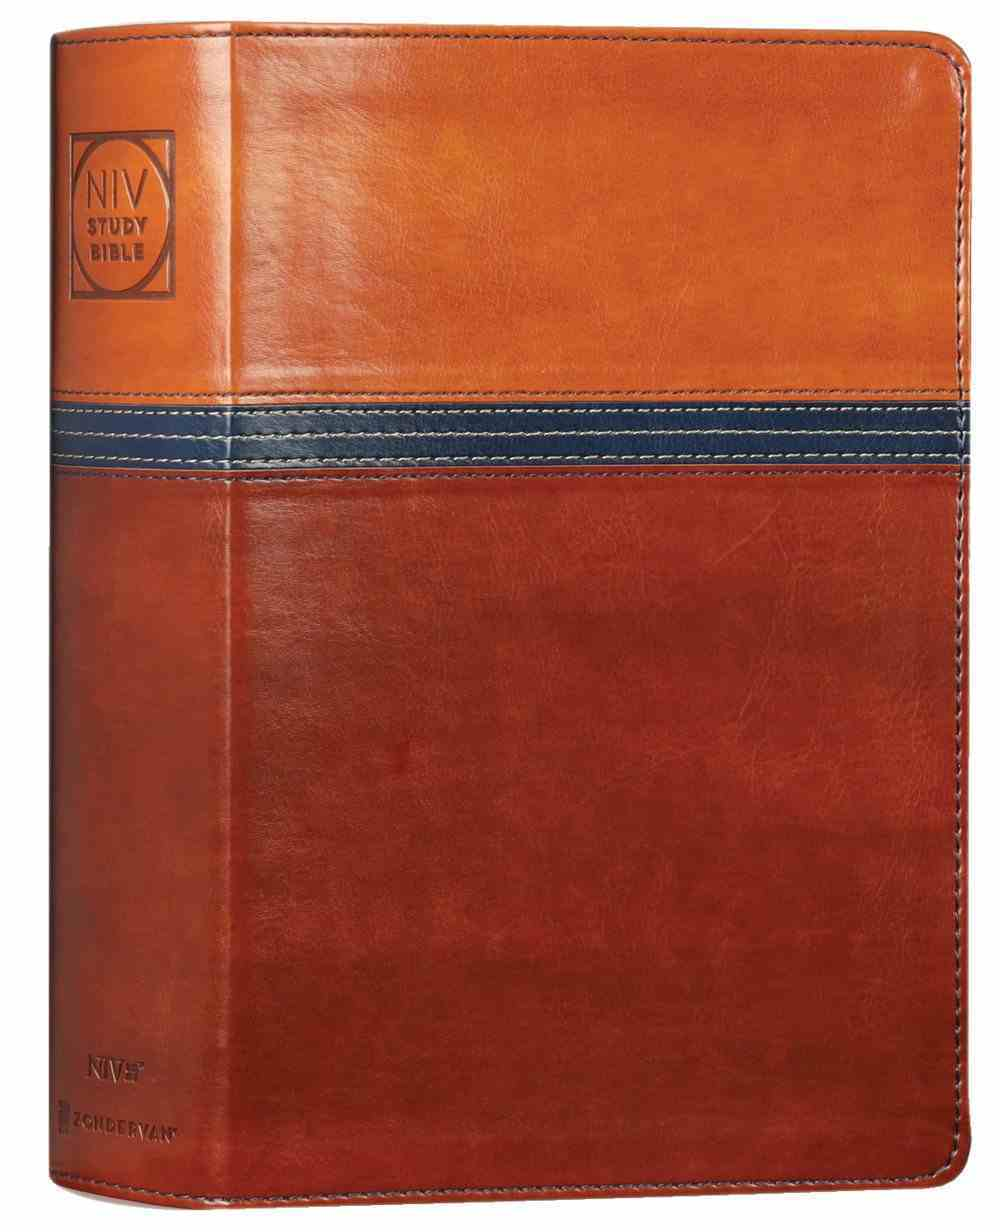 NIV Study Bible Personal Size Brown/Blue Indexed (Red Letter Edition) Fully Revised Edition (2020) Premium Imitation Leather